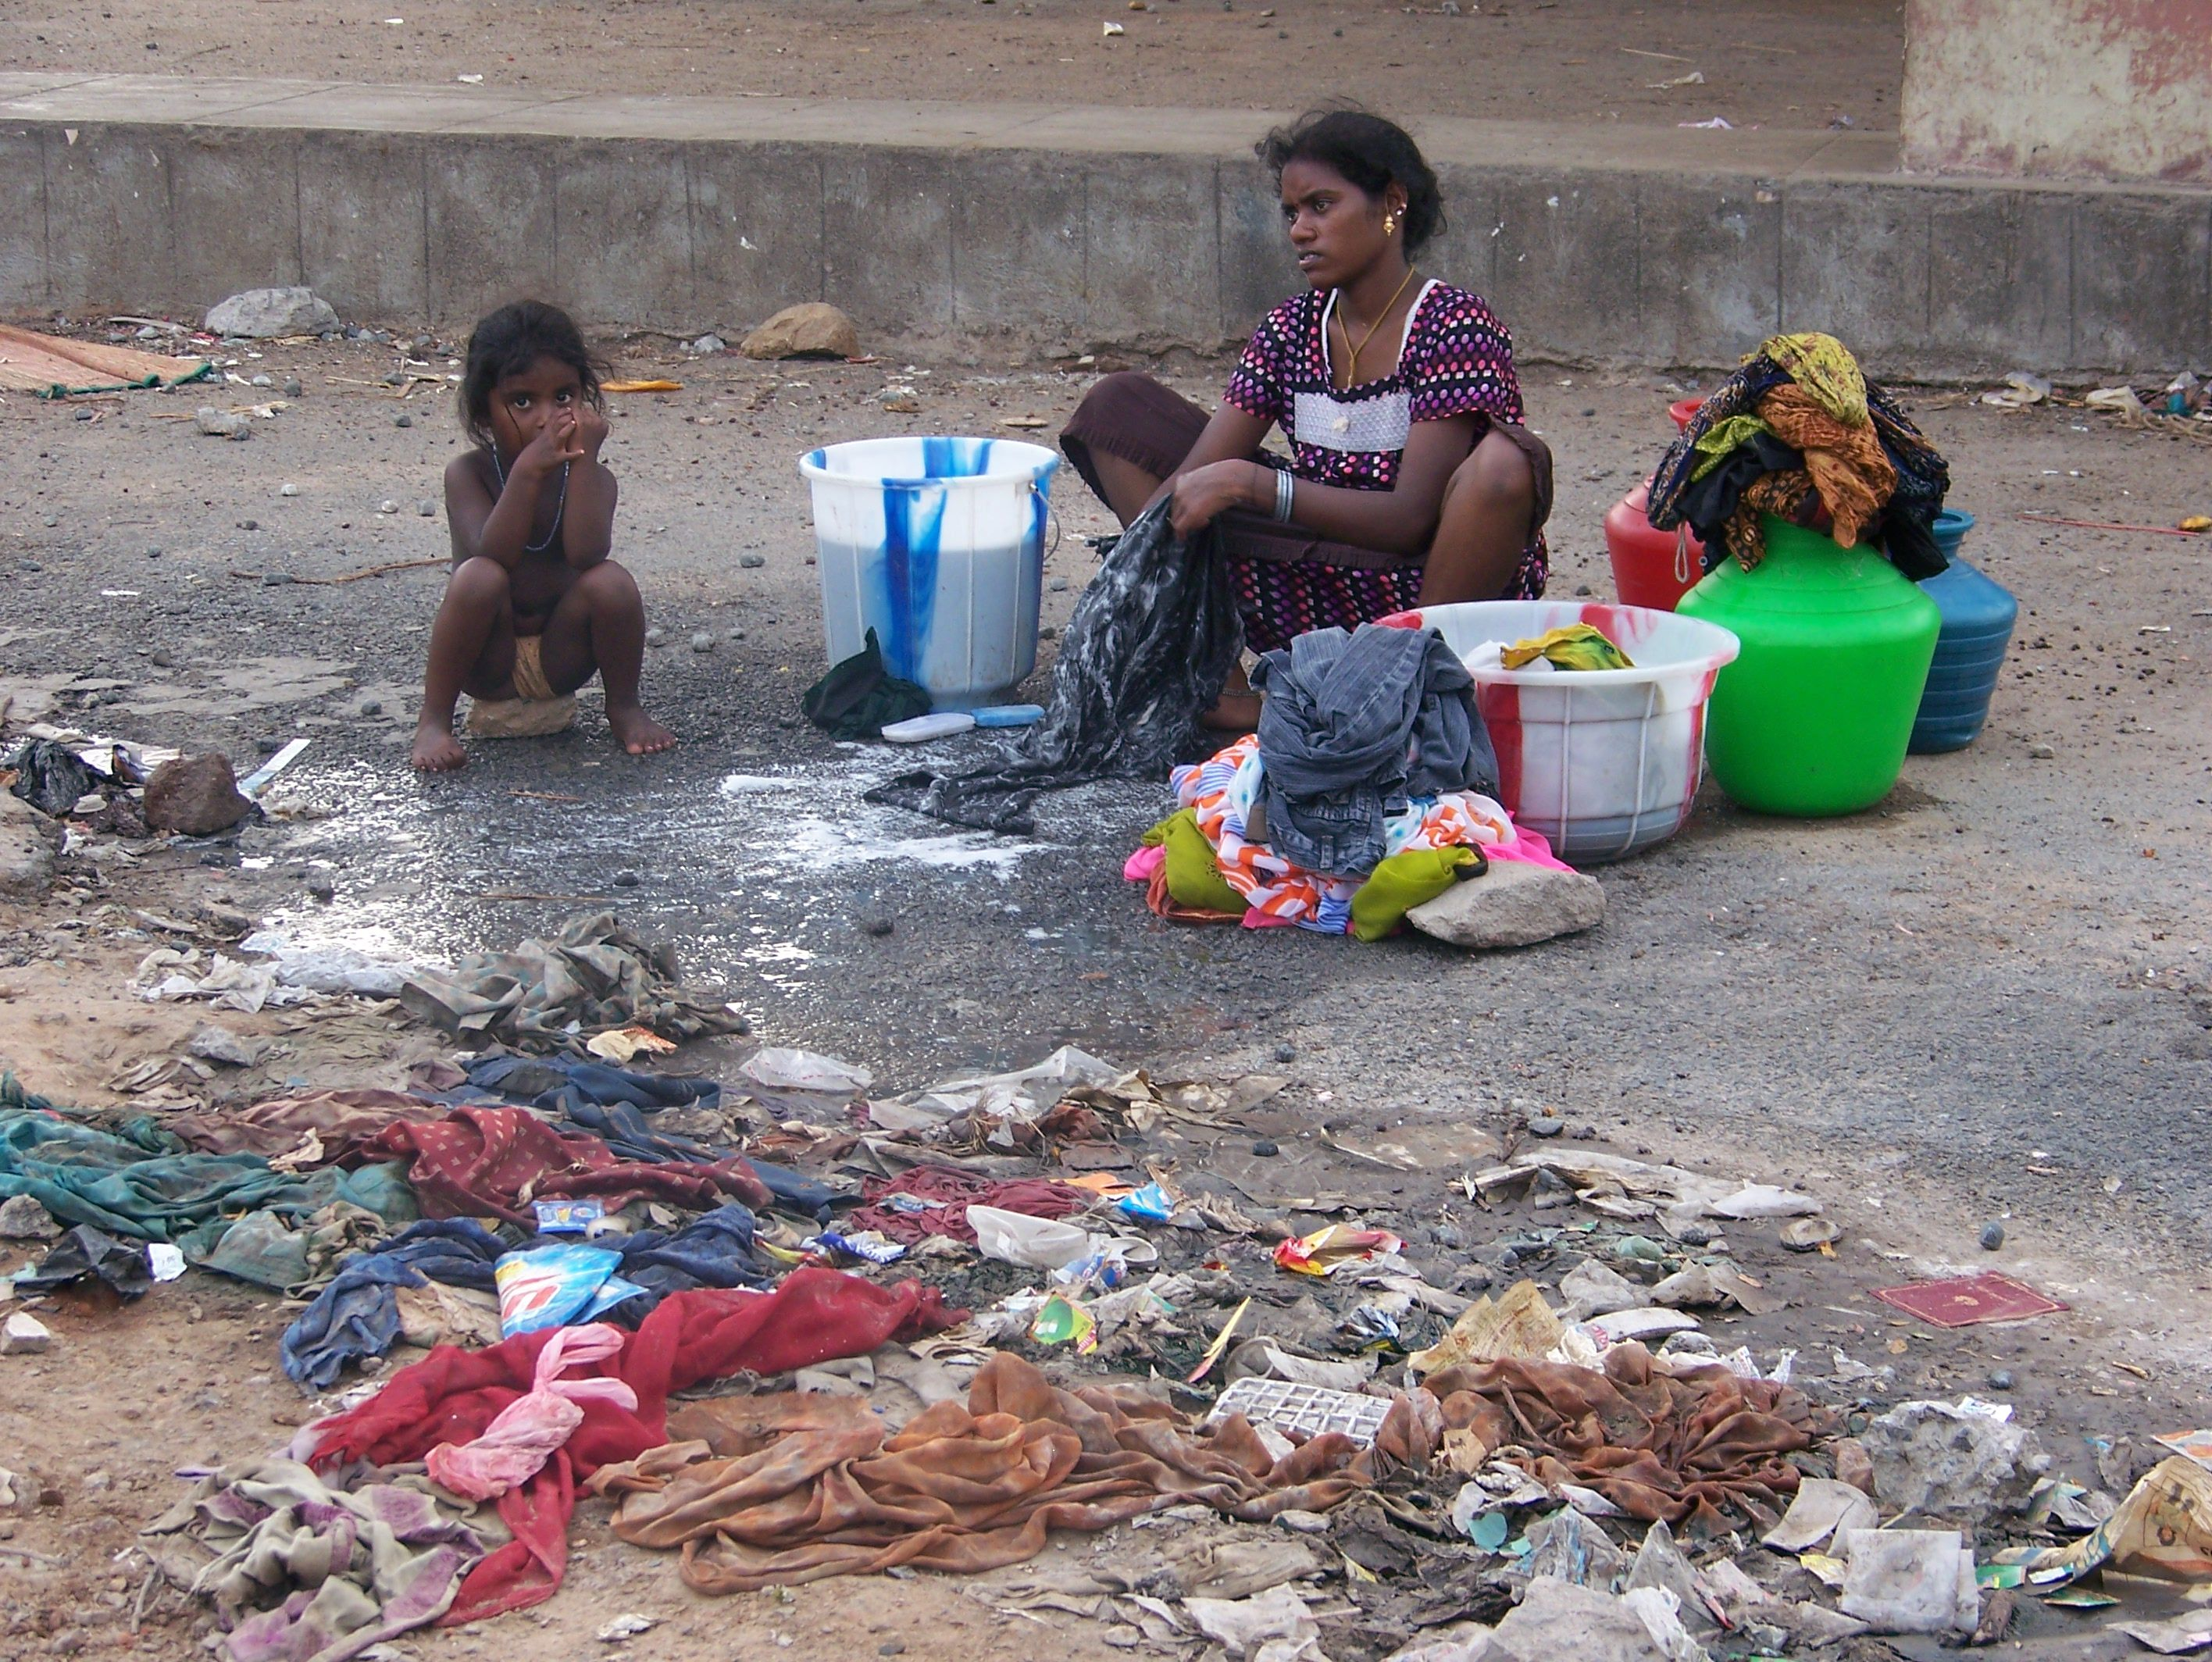 slum children in india Slum areas in india is further confined mainly to analyses based on school surveys in slum areas (for example, tooley and dixion, 2007), or slum children's survey which focus on a few slums (for example, aggarwal and chugh, 2003 banerji, 2000 jha and.